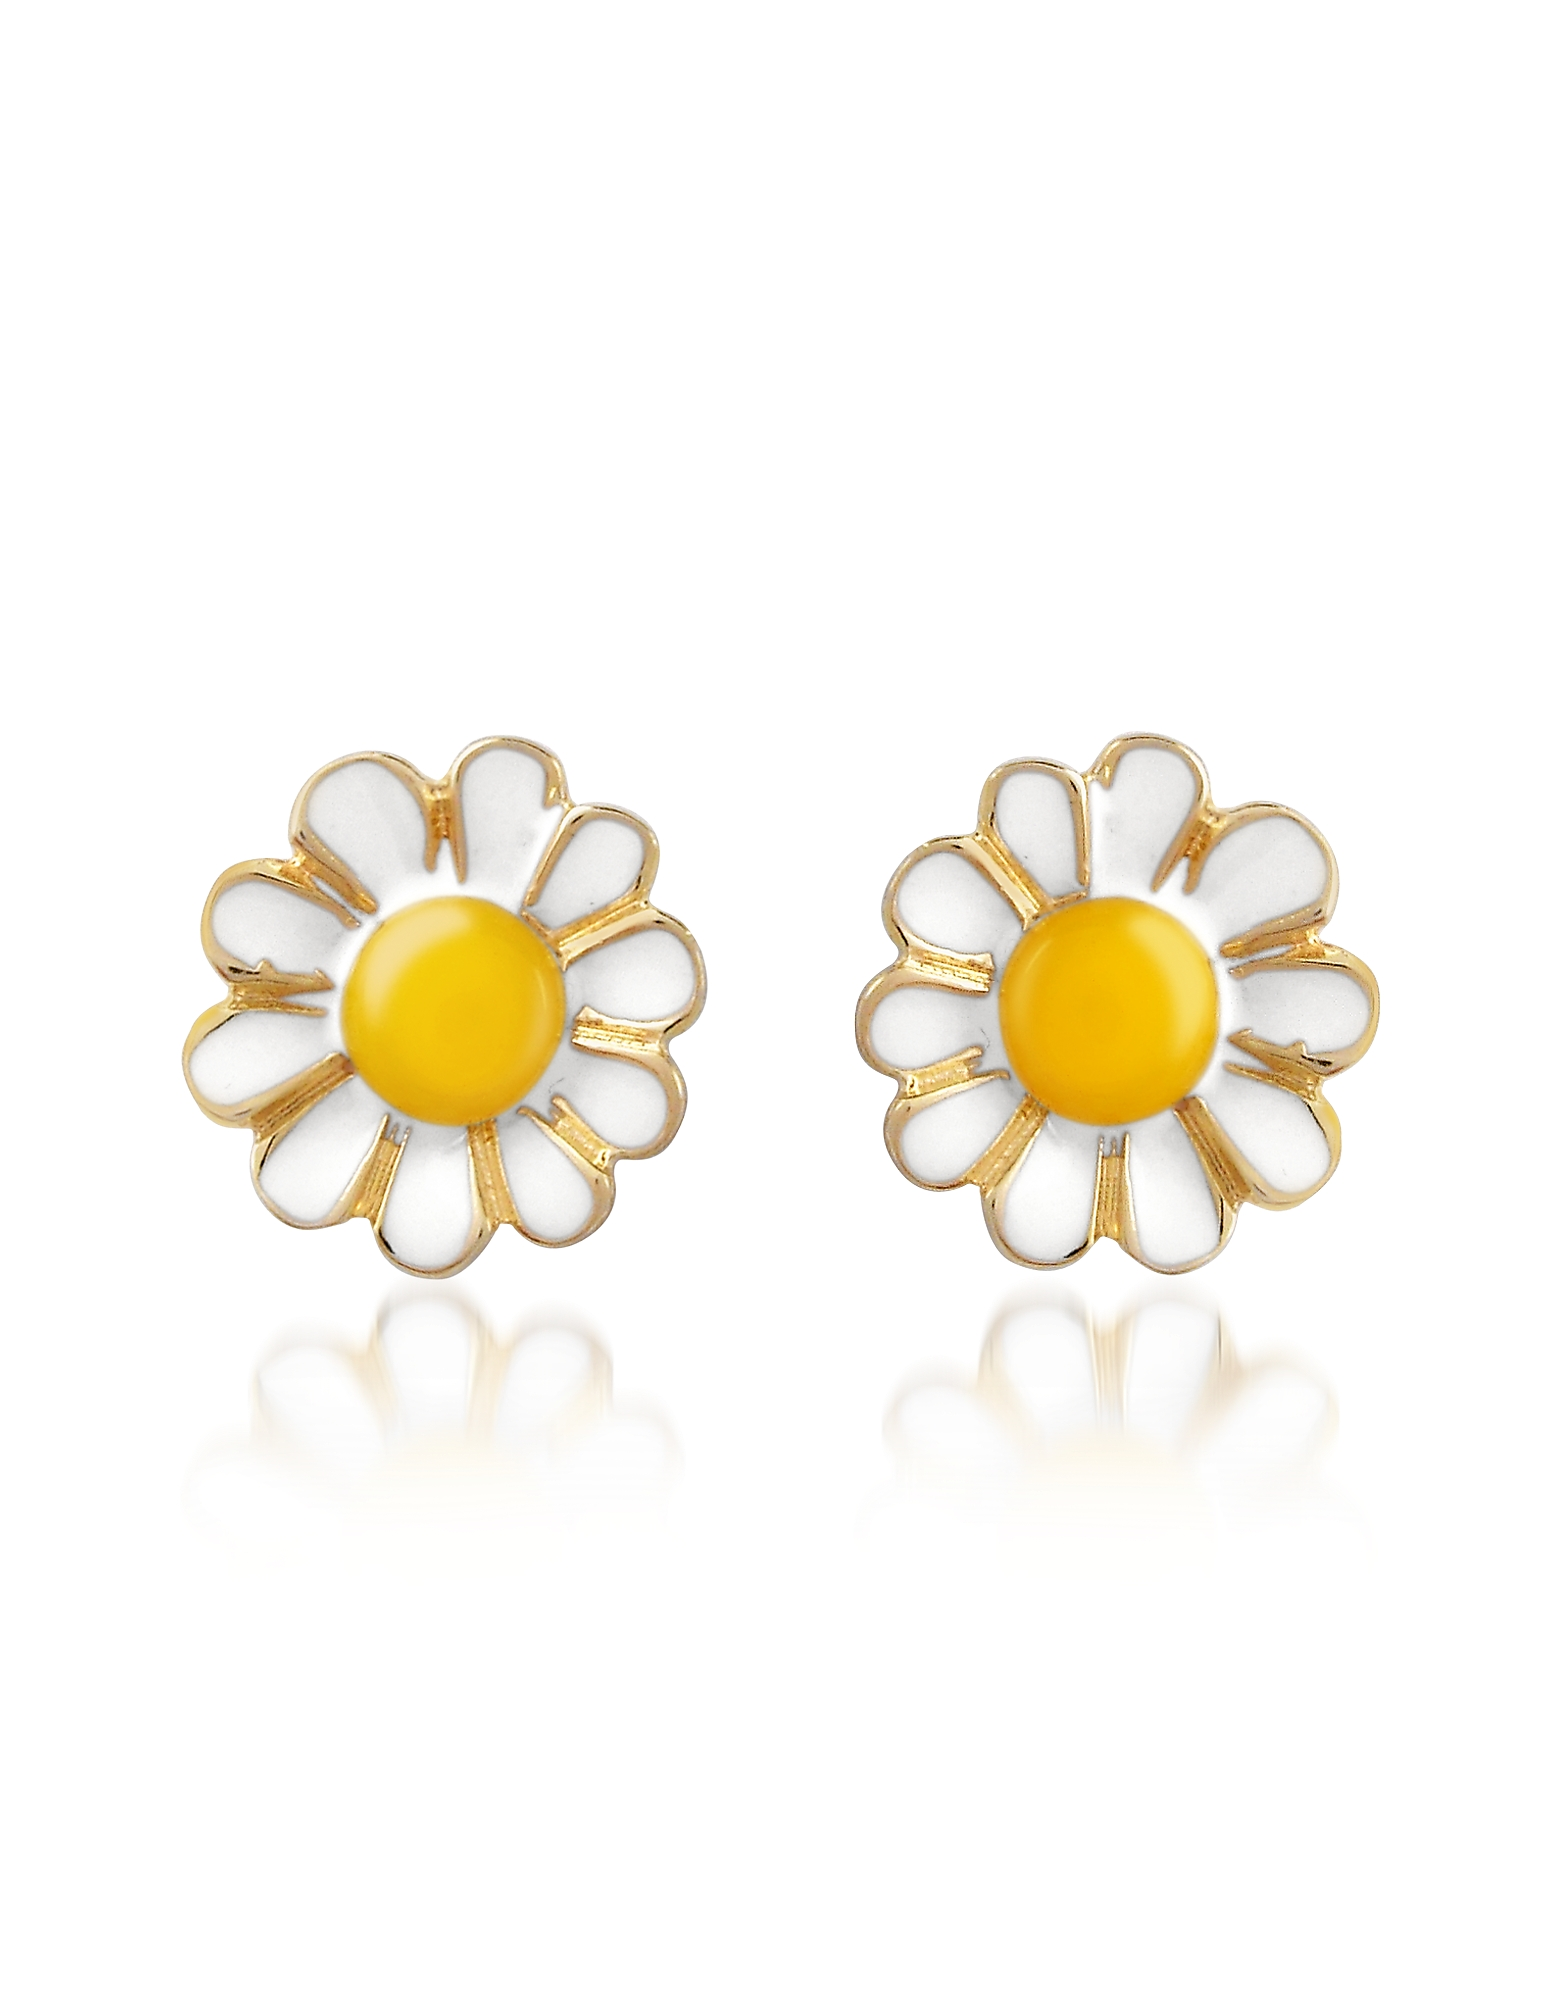 AZ Collection Earrings, Garden Line - Daisy Enamel Earrings